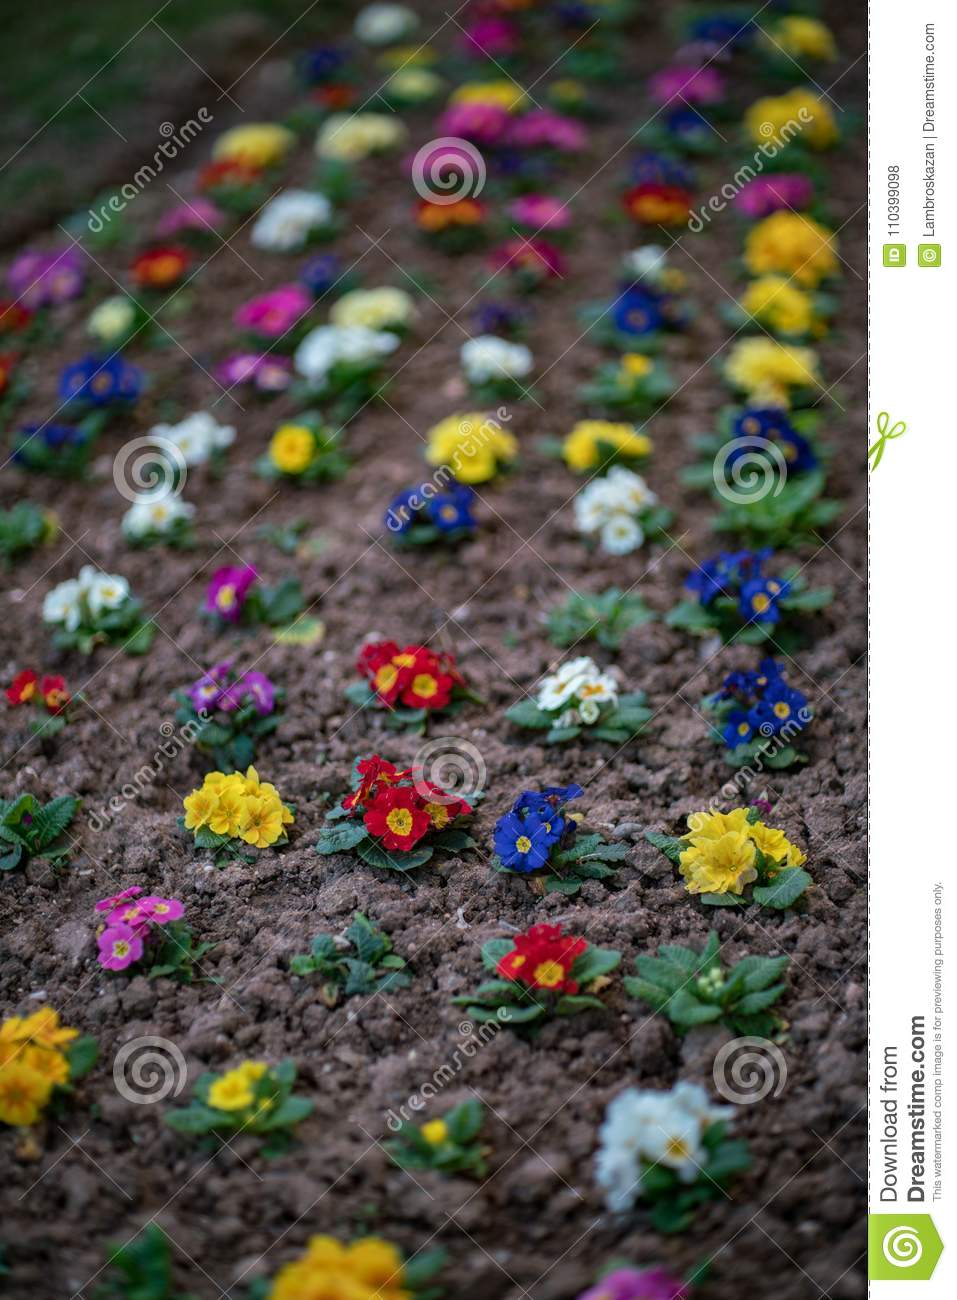 Beautiful Flowers in Different Colors, small garden in the city